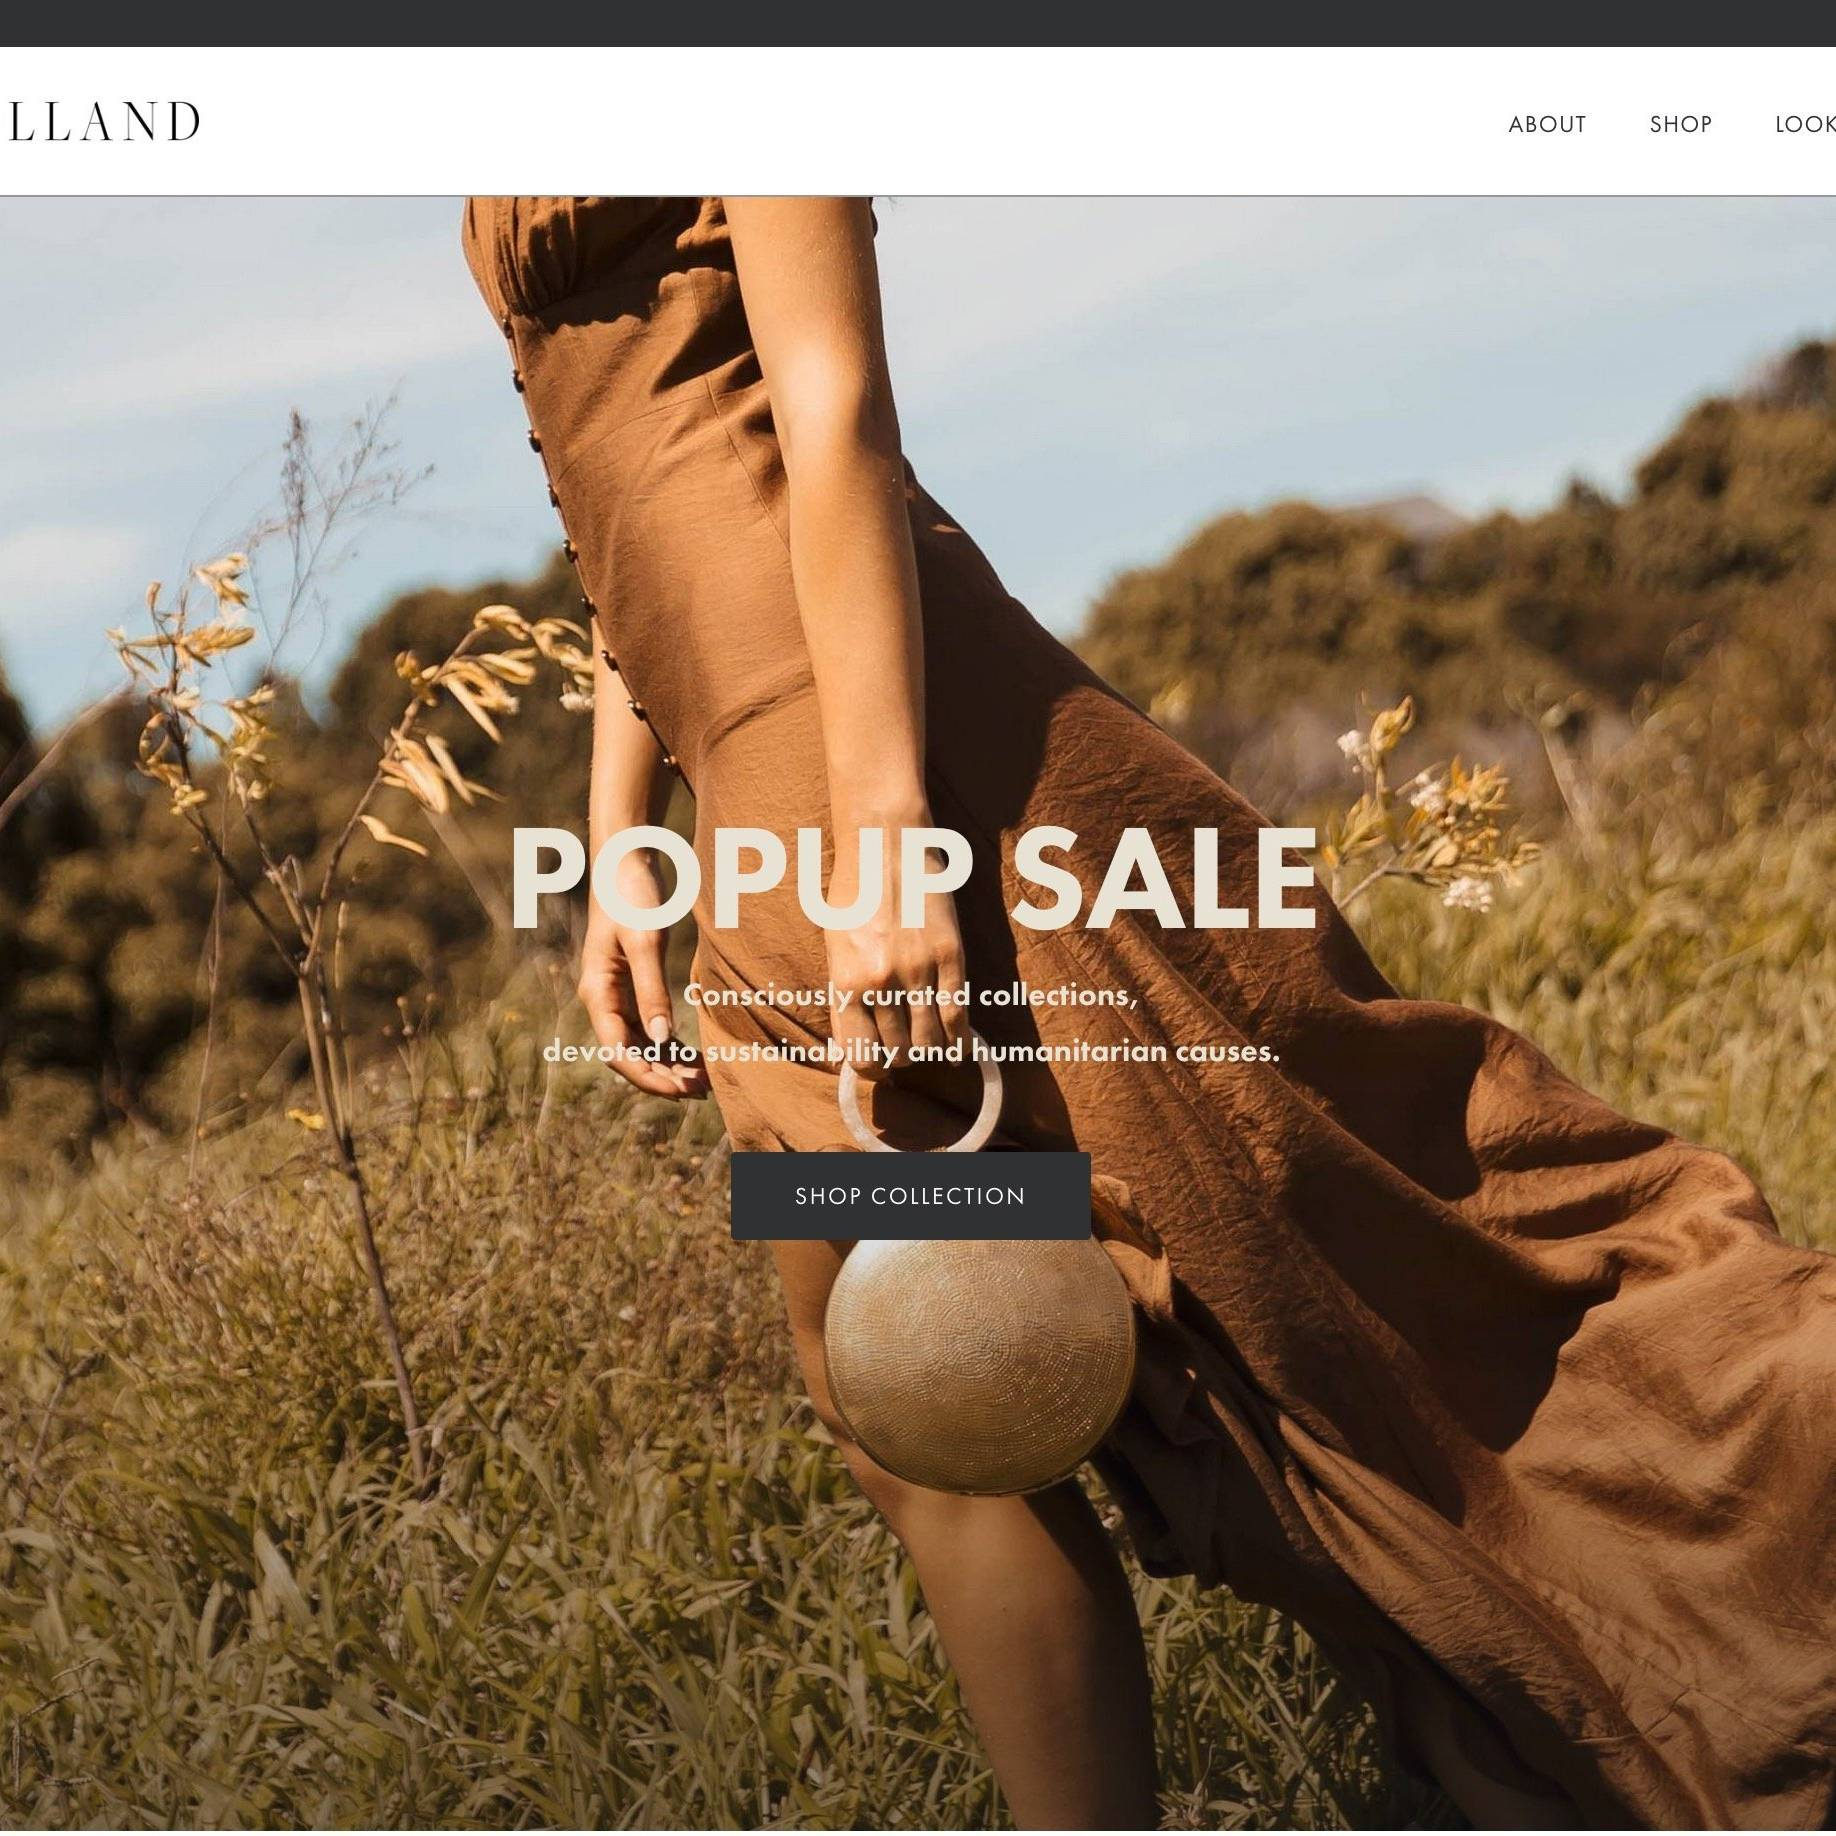 Nataschia Holland Site By The Creative Solutionist